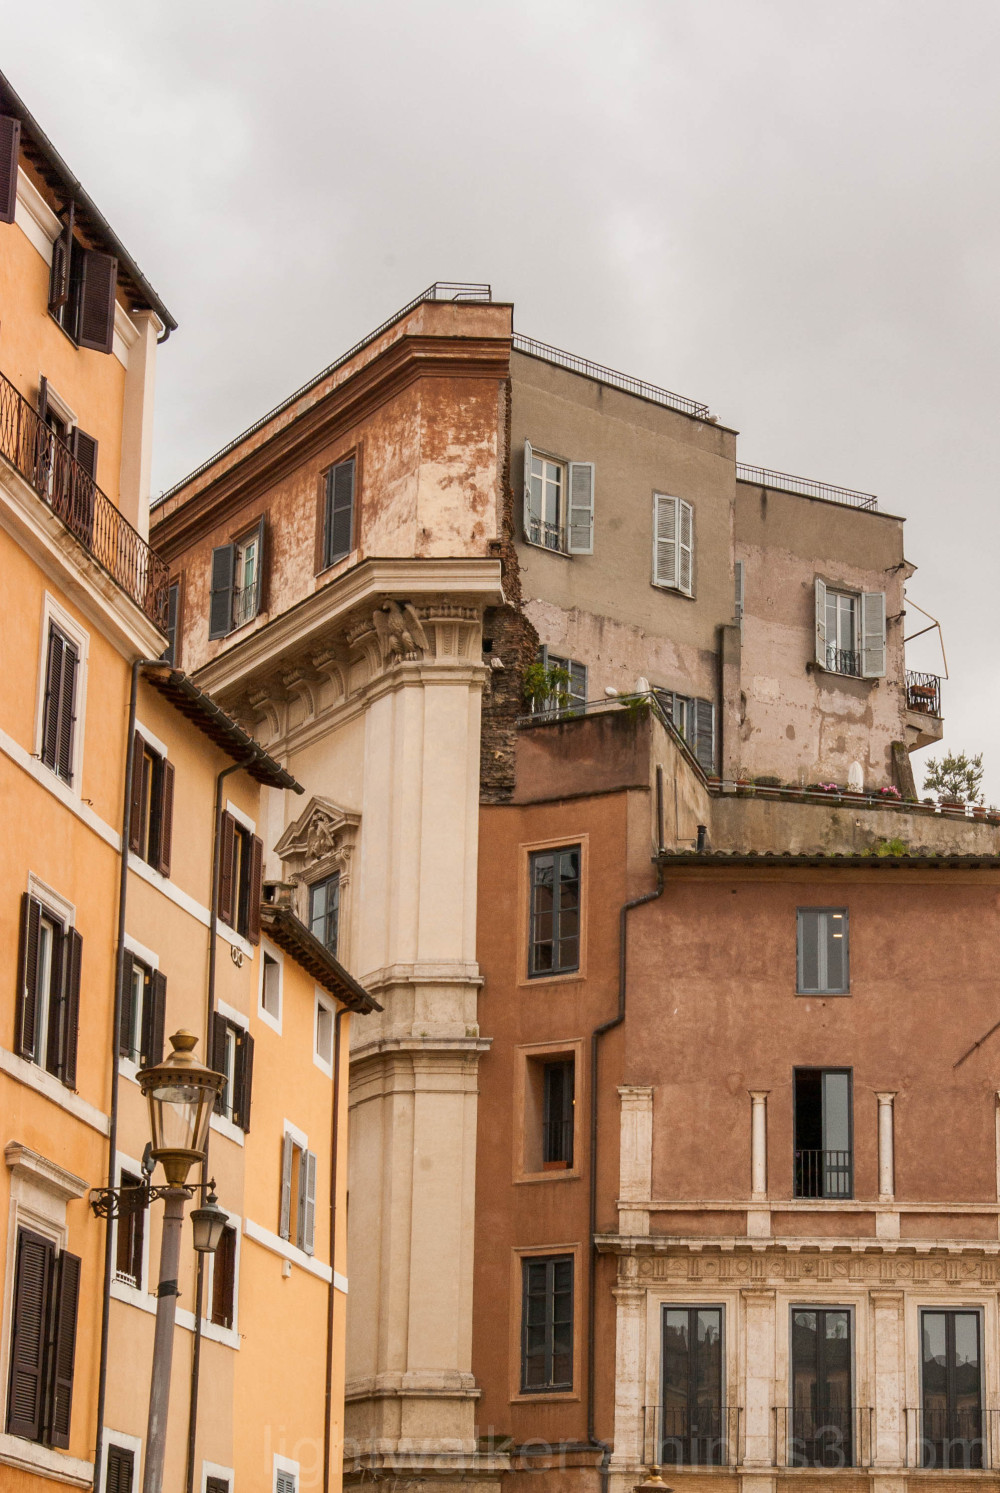 A meeting point of houses in Rome